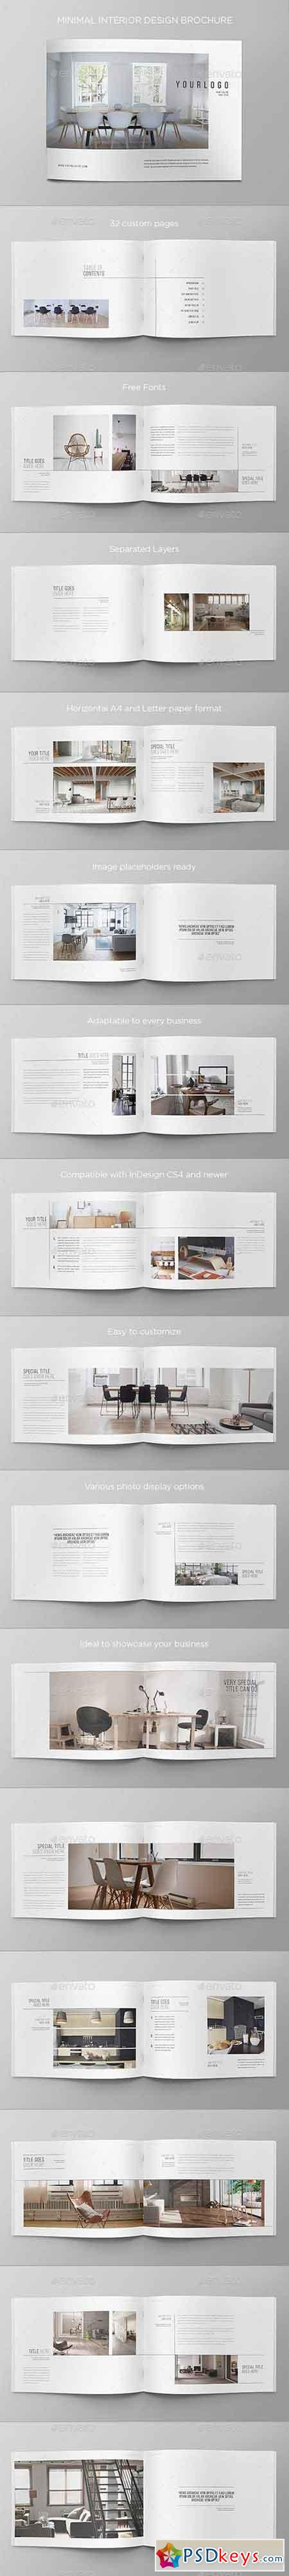 Minimal Interior Design Brochure 8925678